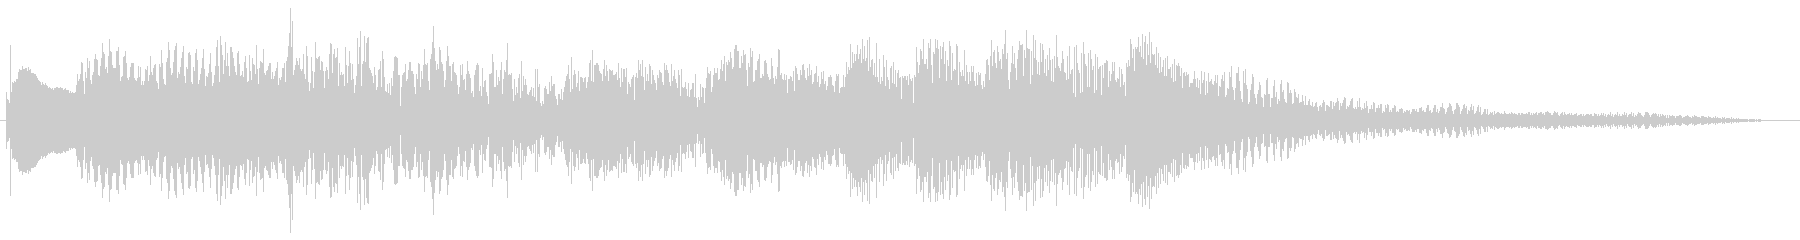 Image of sound logo and food and beverage related companies's unreproduced waveform